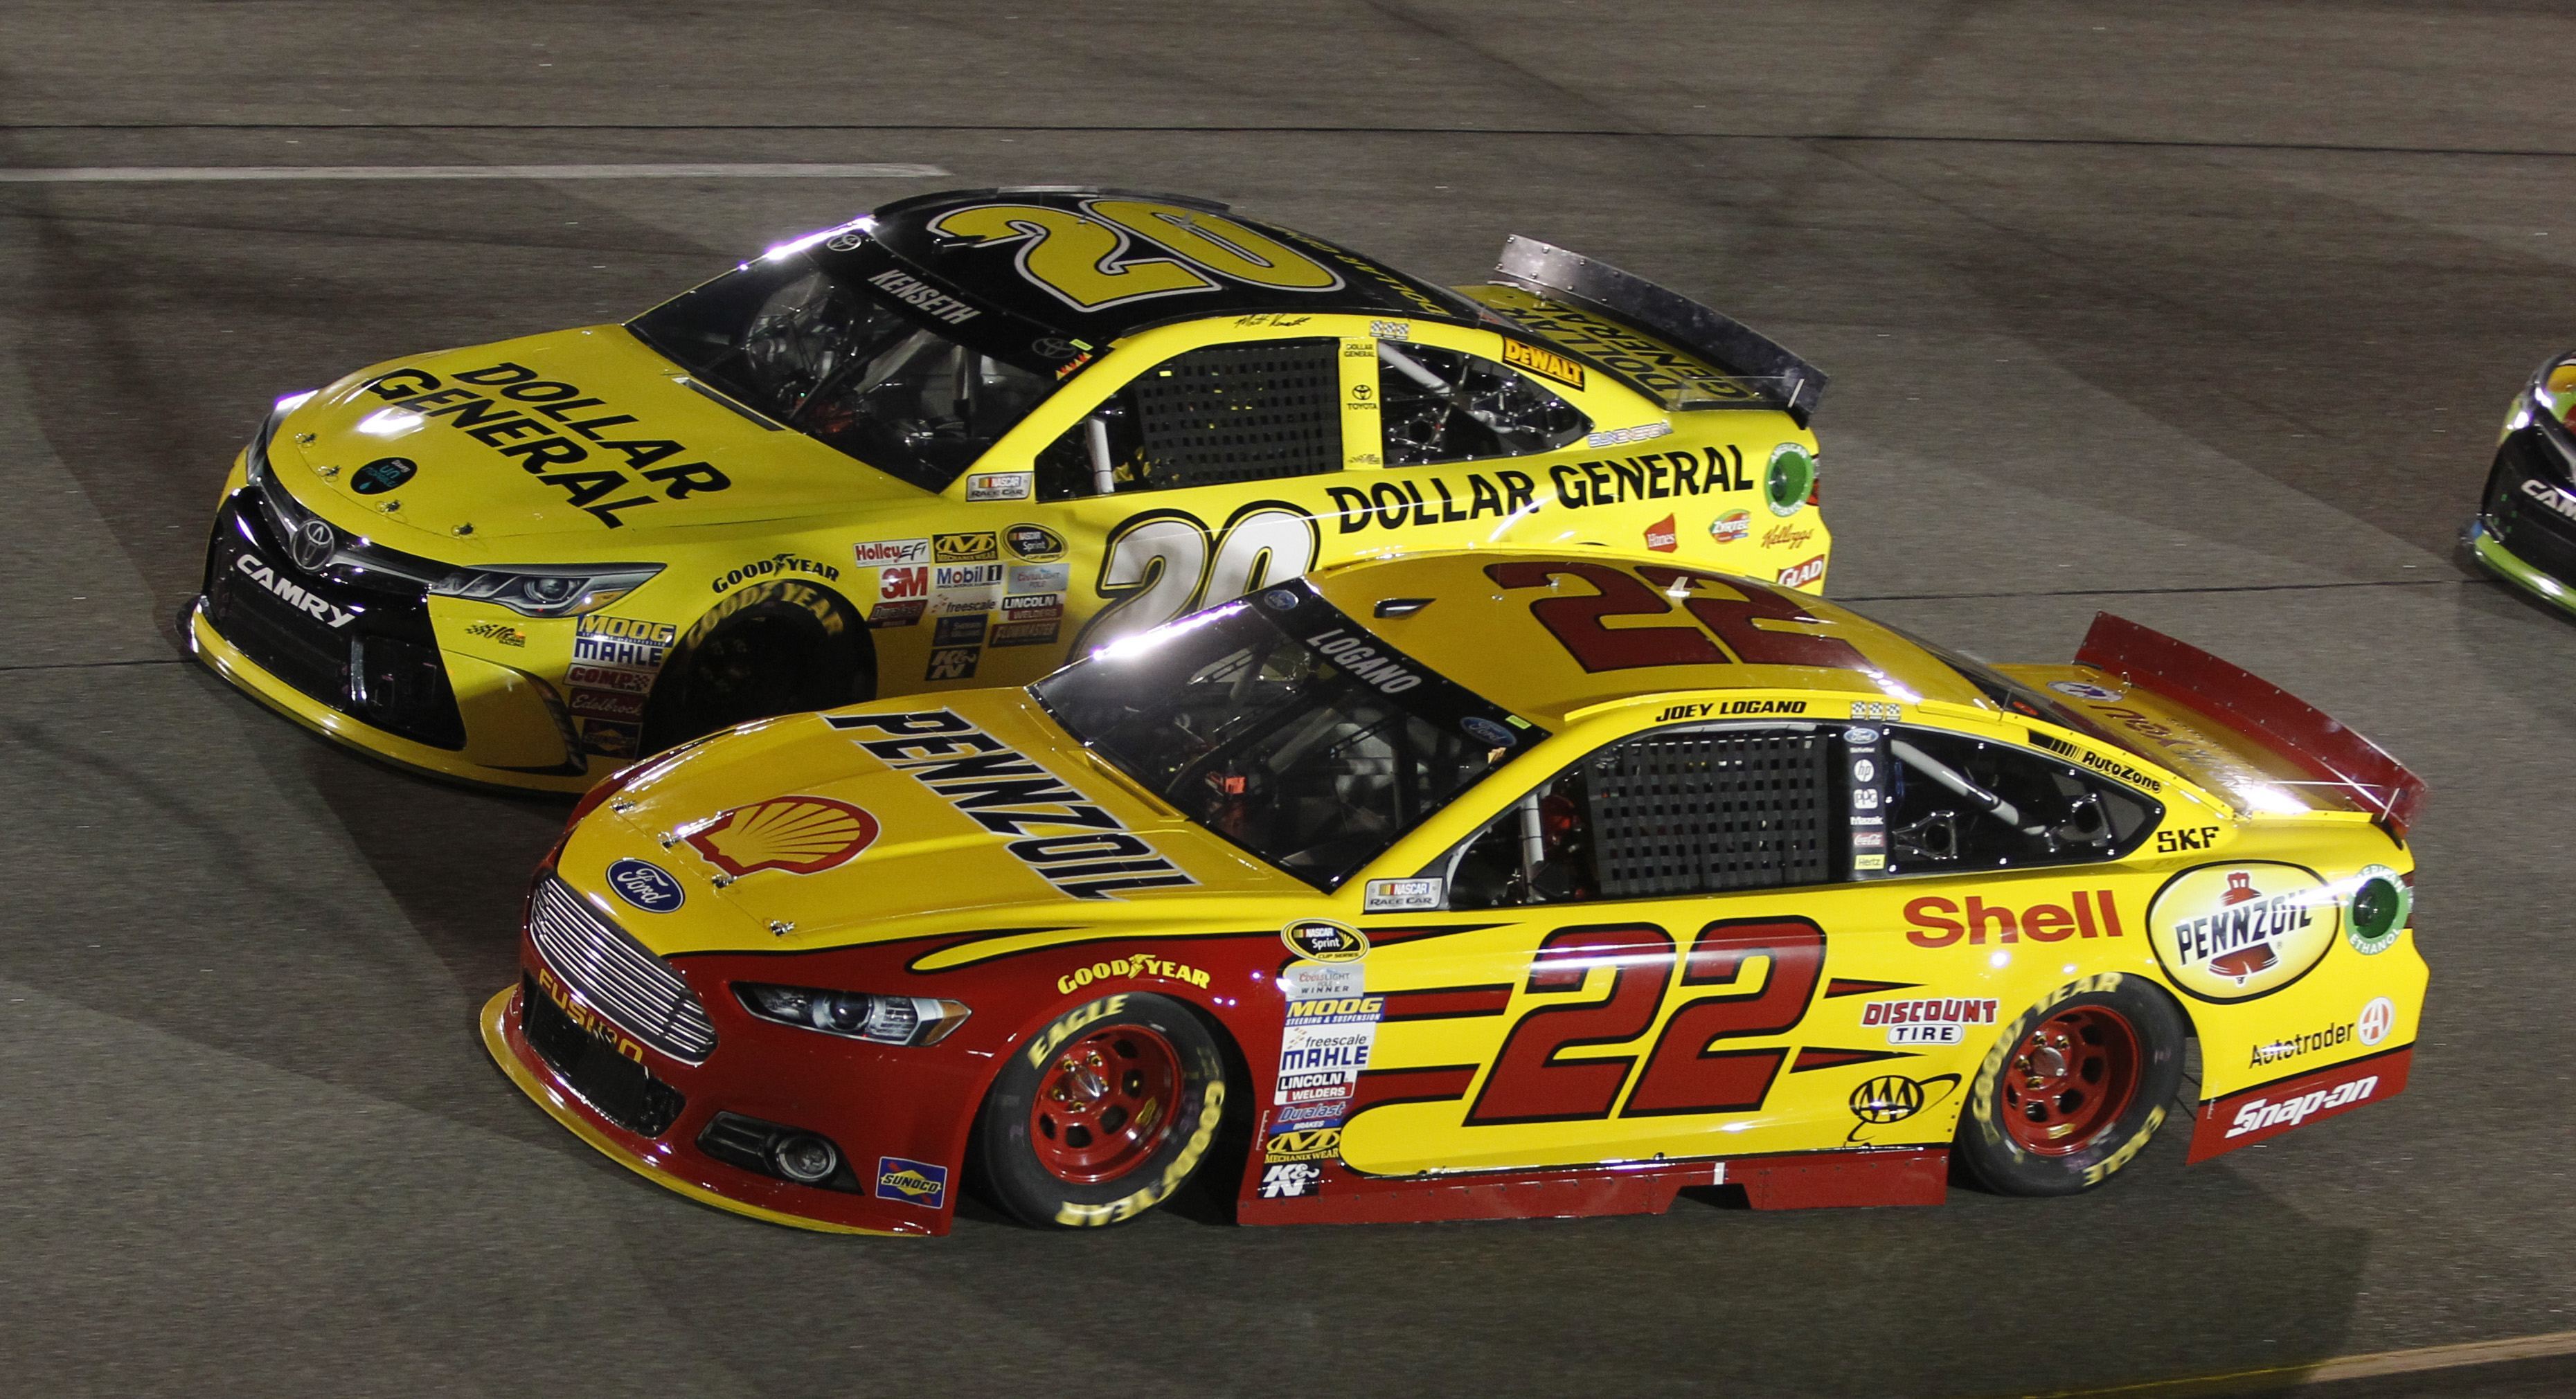 Joey Logano (22) and Sprint Cup Series driver Matt Kenseth (20) race for position during the NASCAR Sprint Cup auto race at Richmond International Raceway on Saturday Sept. 12, 2015.  (AP Photo/Jesse Hutchinson)